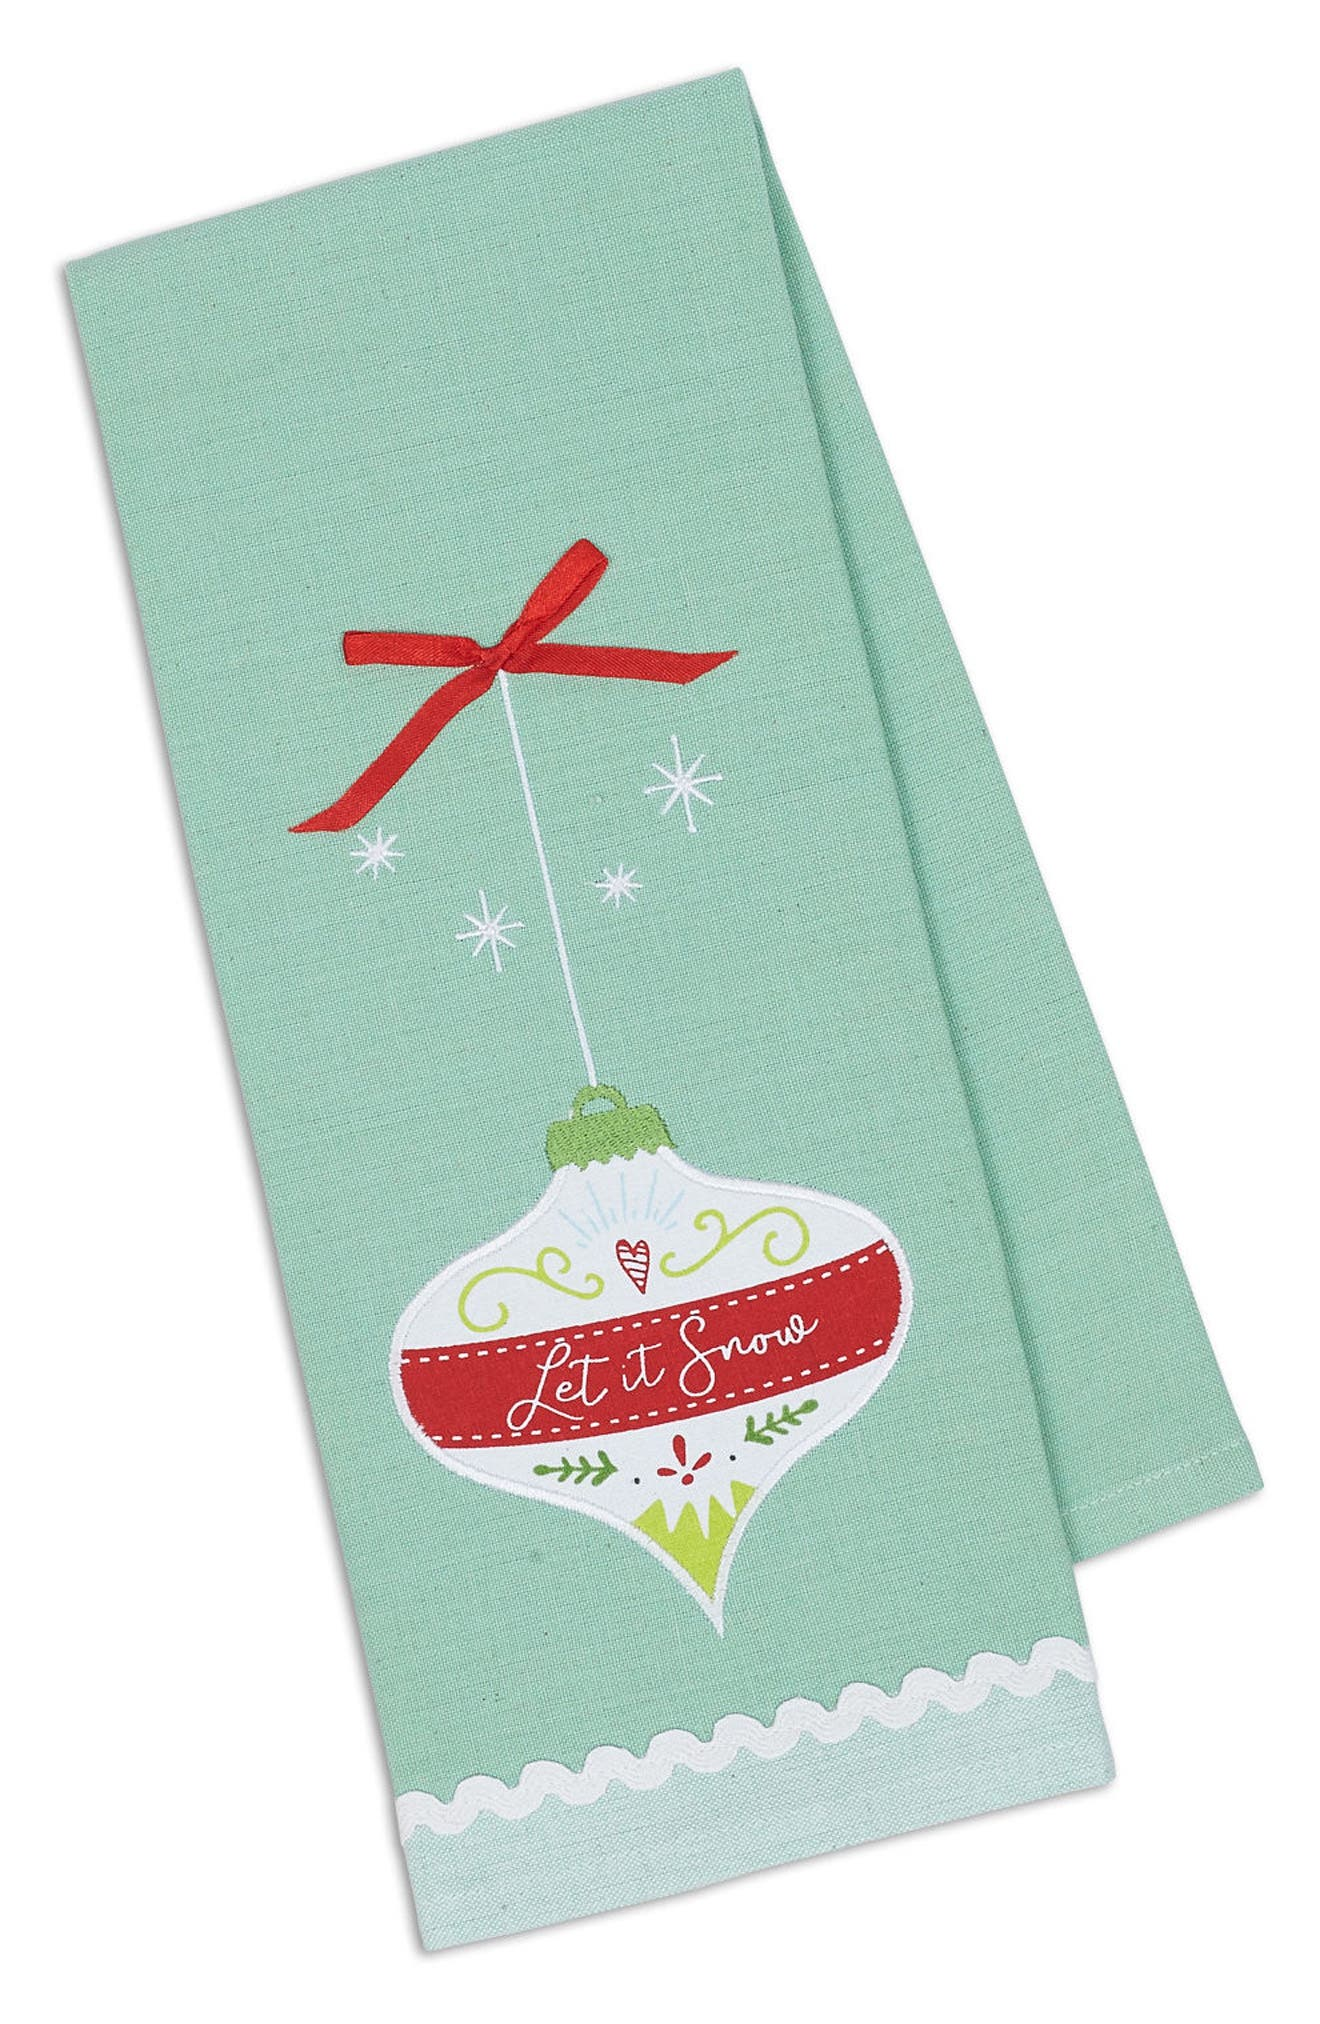 Alternate Image 1 Selected - Design Imports Let It Snow Embroidered Dish Towel